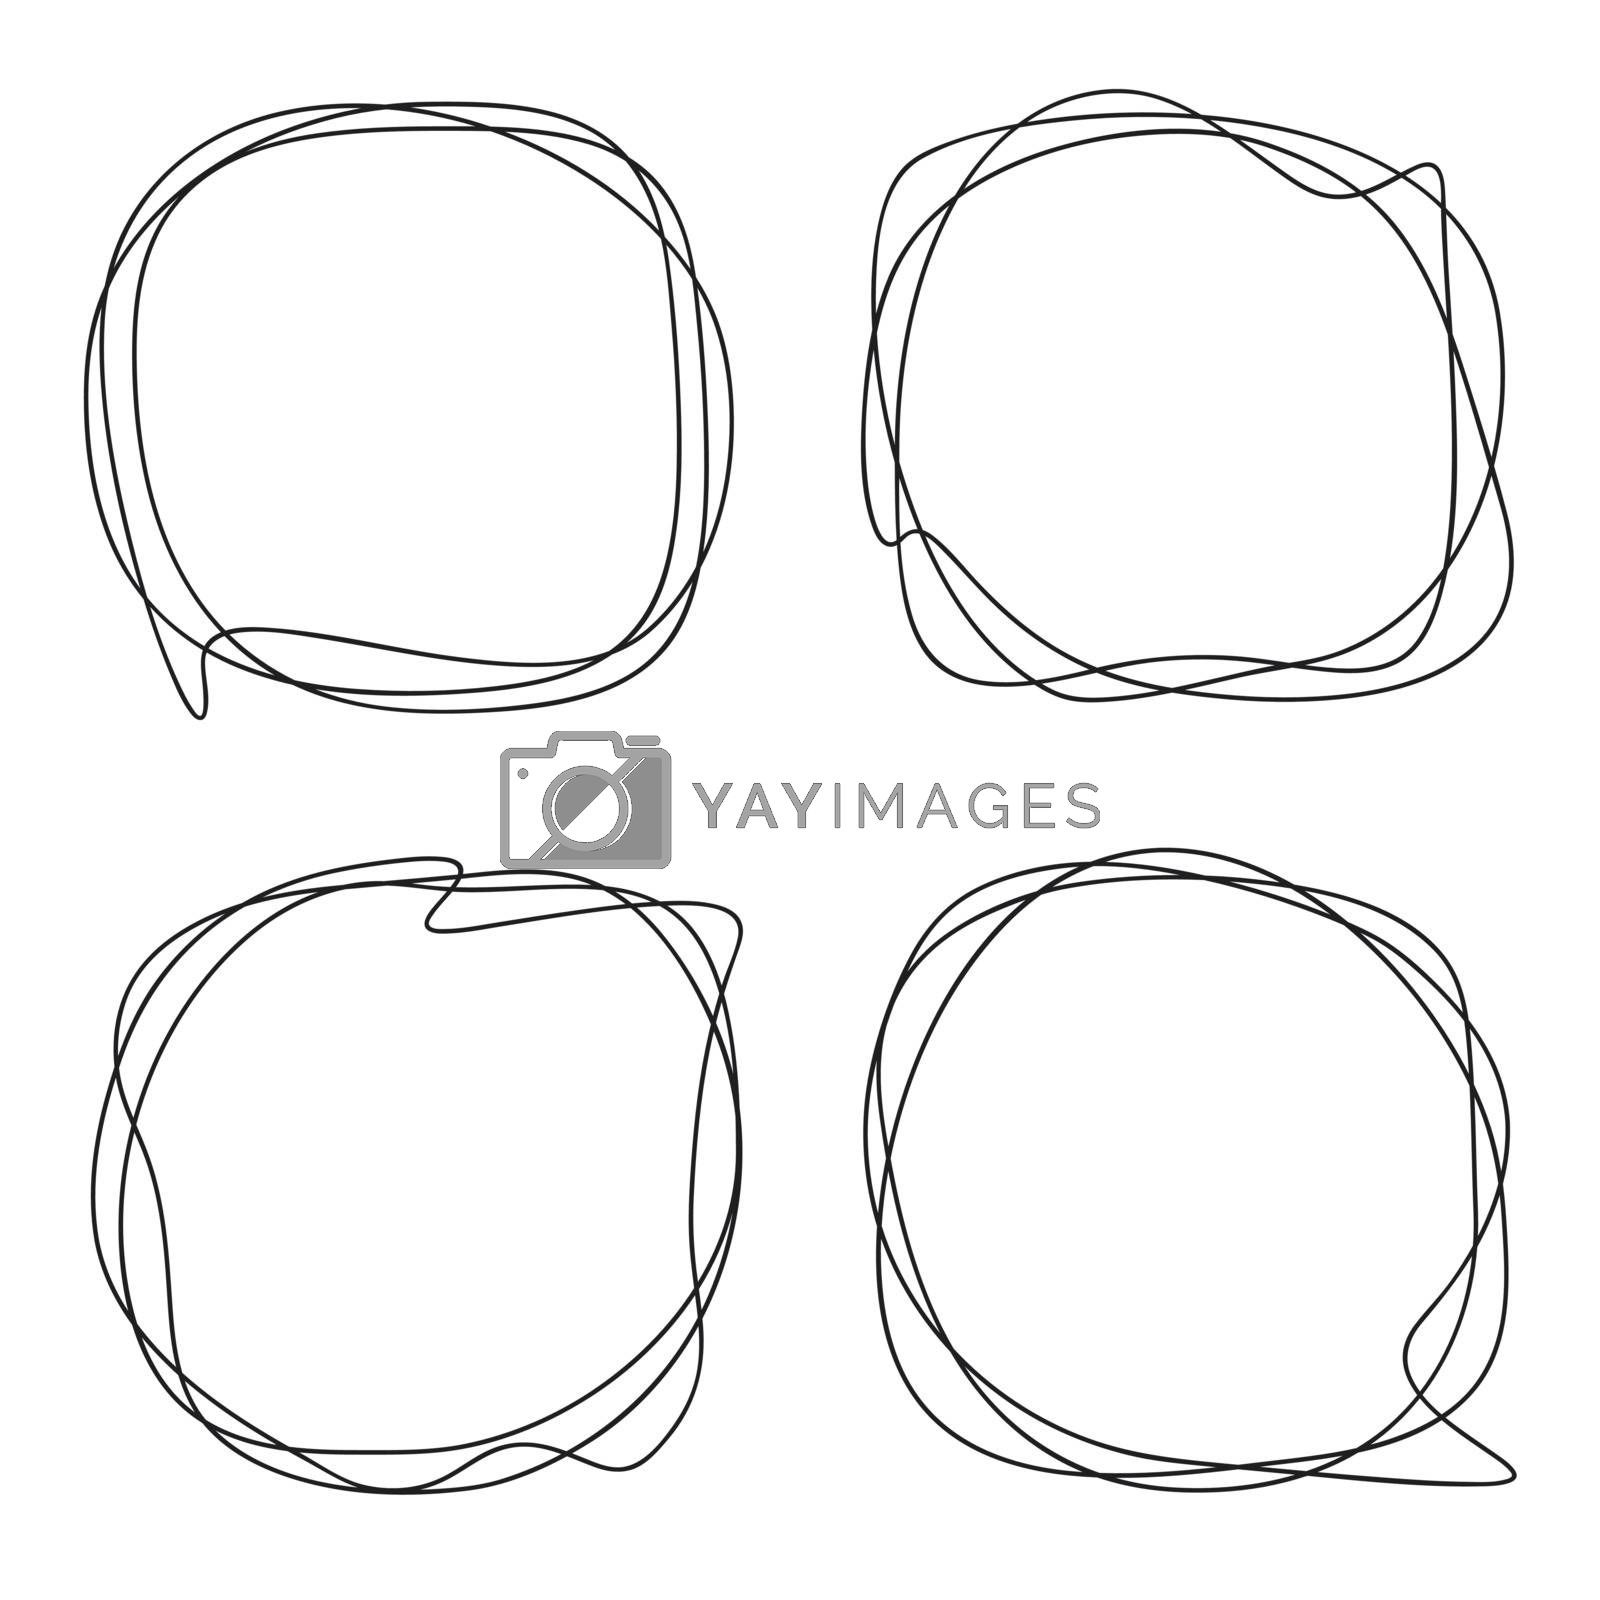 Speech Bubble collection. Abstract frames for the design of business presentations illustrating communicating chatting. Set of Wavy lines of objects